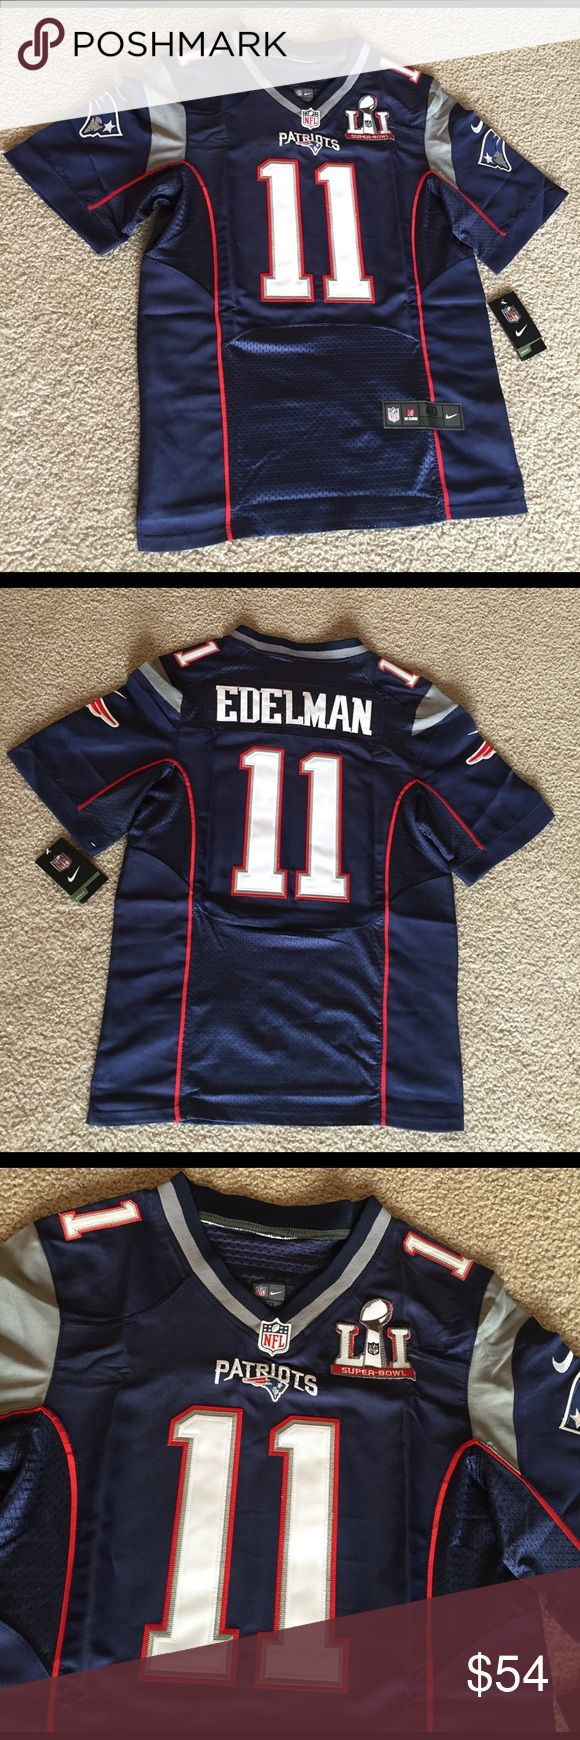 Patriots Super Bowl 51 Football Jersey EDELMAN #11 Brand new with tags! Fast shipping! New England Patriots Julian Edelman Football Jersey #11 blue Super Bowl 51 (superbowl). Men's adult sizes: medium / 40 , large / 44 , extra large / XL / 48 , double extra large / XXL / 2XL / 52 , triple extra large / XXXL / 3XL / 56 ... I also have soccer jerseys for sale and Brady , gronkowski , White ... feel free to ask questions or for sizing Shirts Tees - Long Sleeve